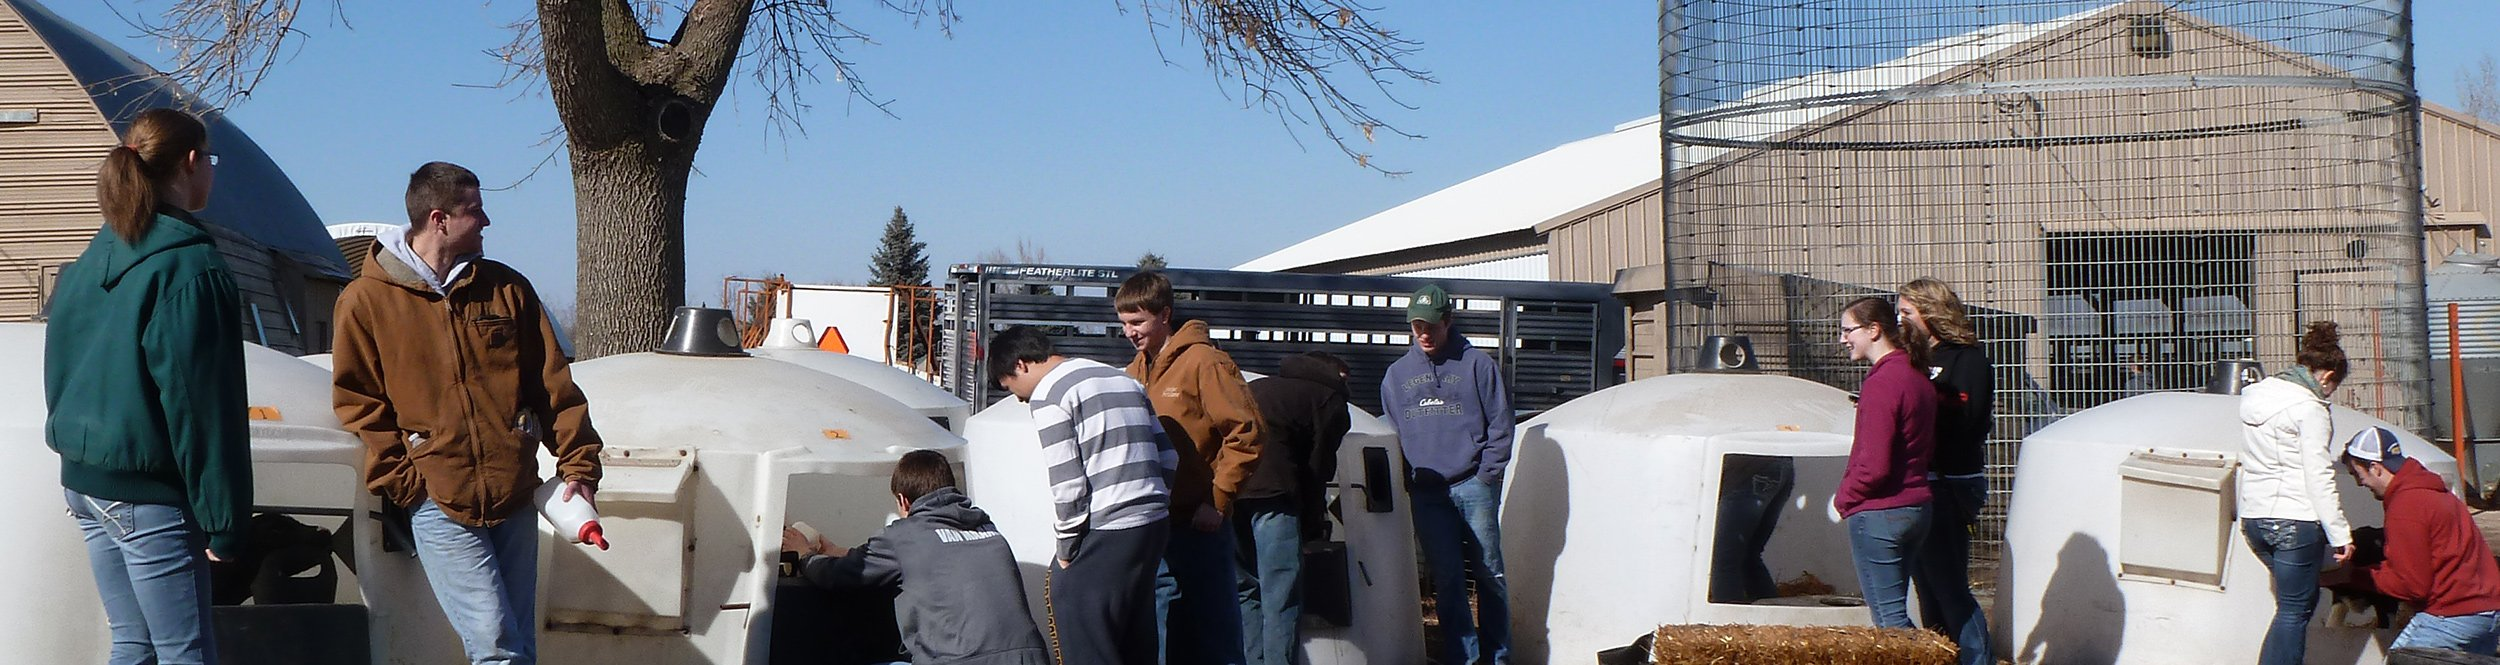 Students gather around huts with calves in them.